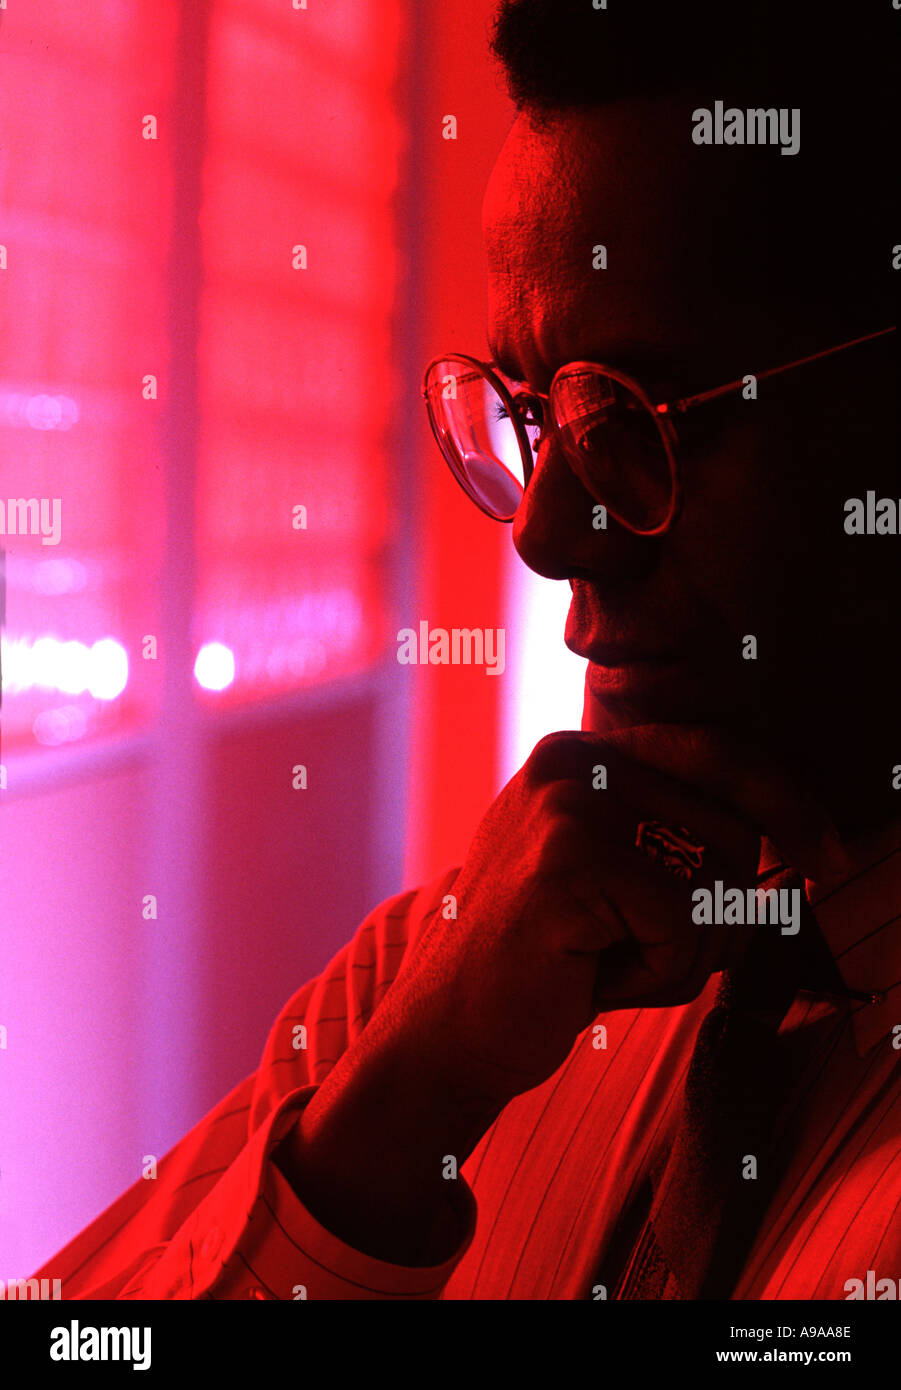 Research Scientist Pondering Problem in Laboratory Stock Photo